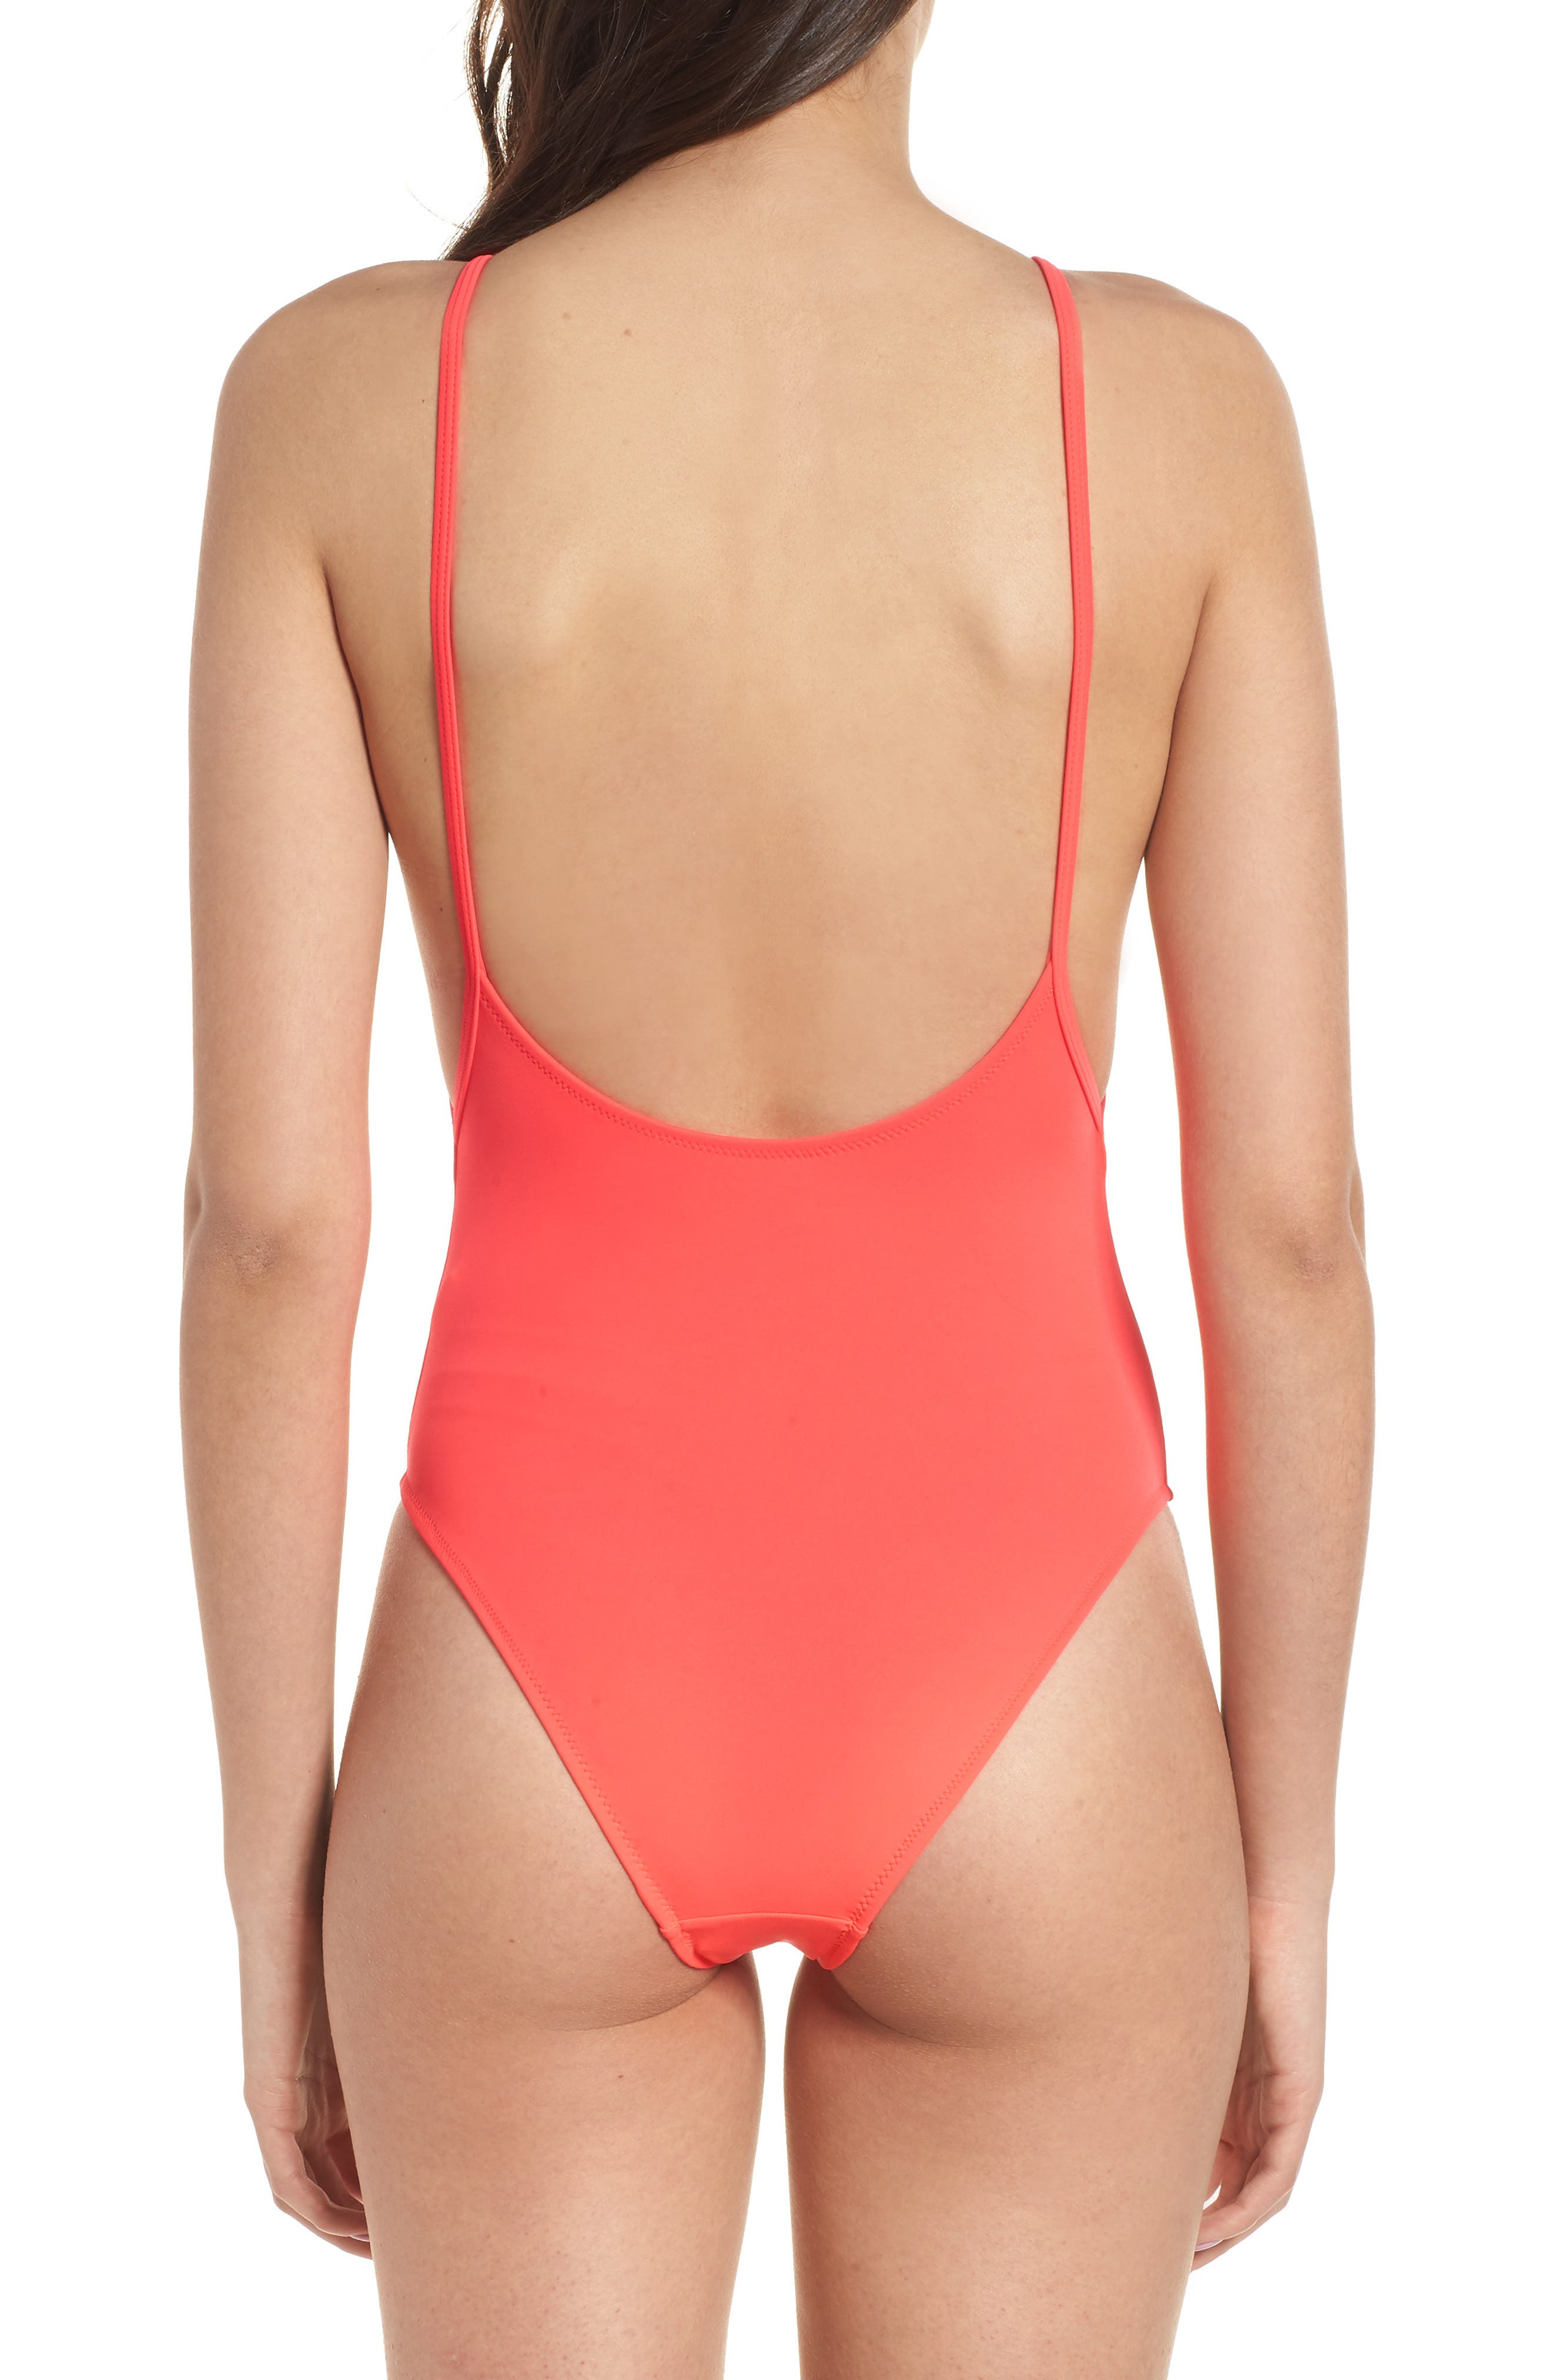 Pamela One-Piece Swimsuit,                             Alternate thumbnail 2, color,                             Red